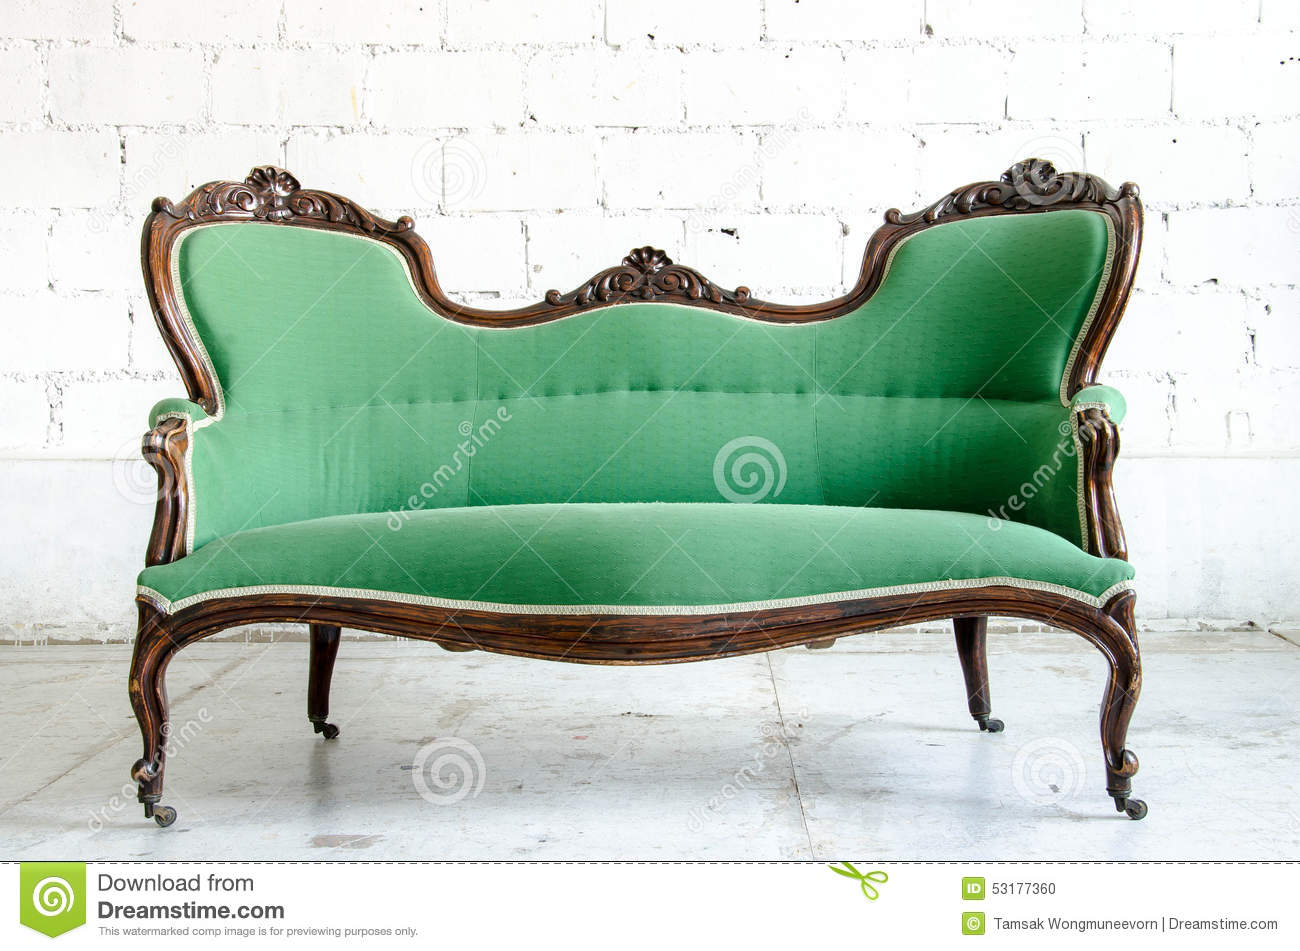 Luxury green vintage style armchair sofa couch in vintage for Kuipstoel fauteuil